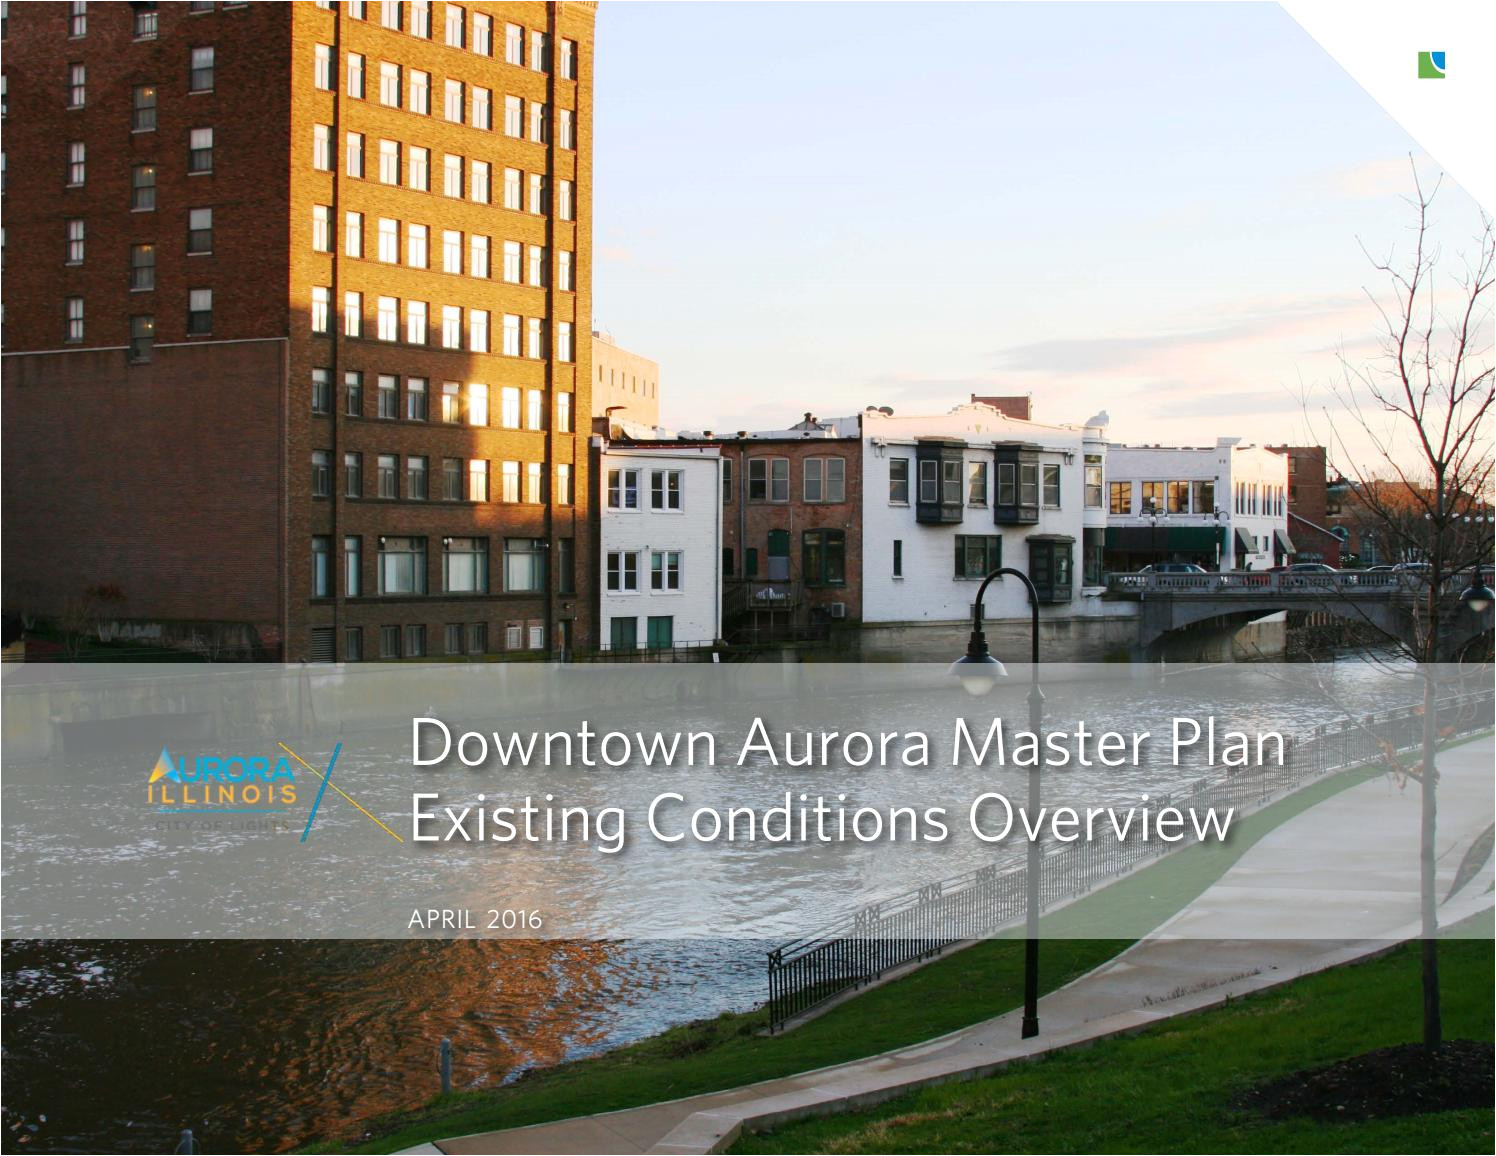 downtown aurora master plan existing conditions overview by david greetham issuu